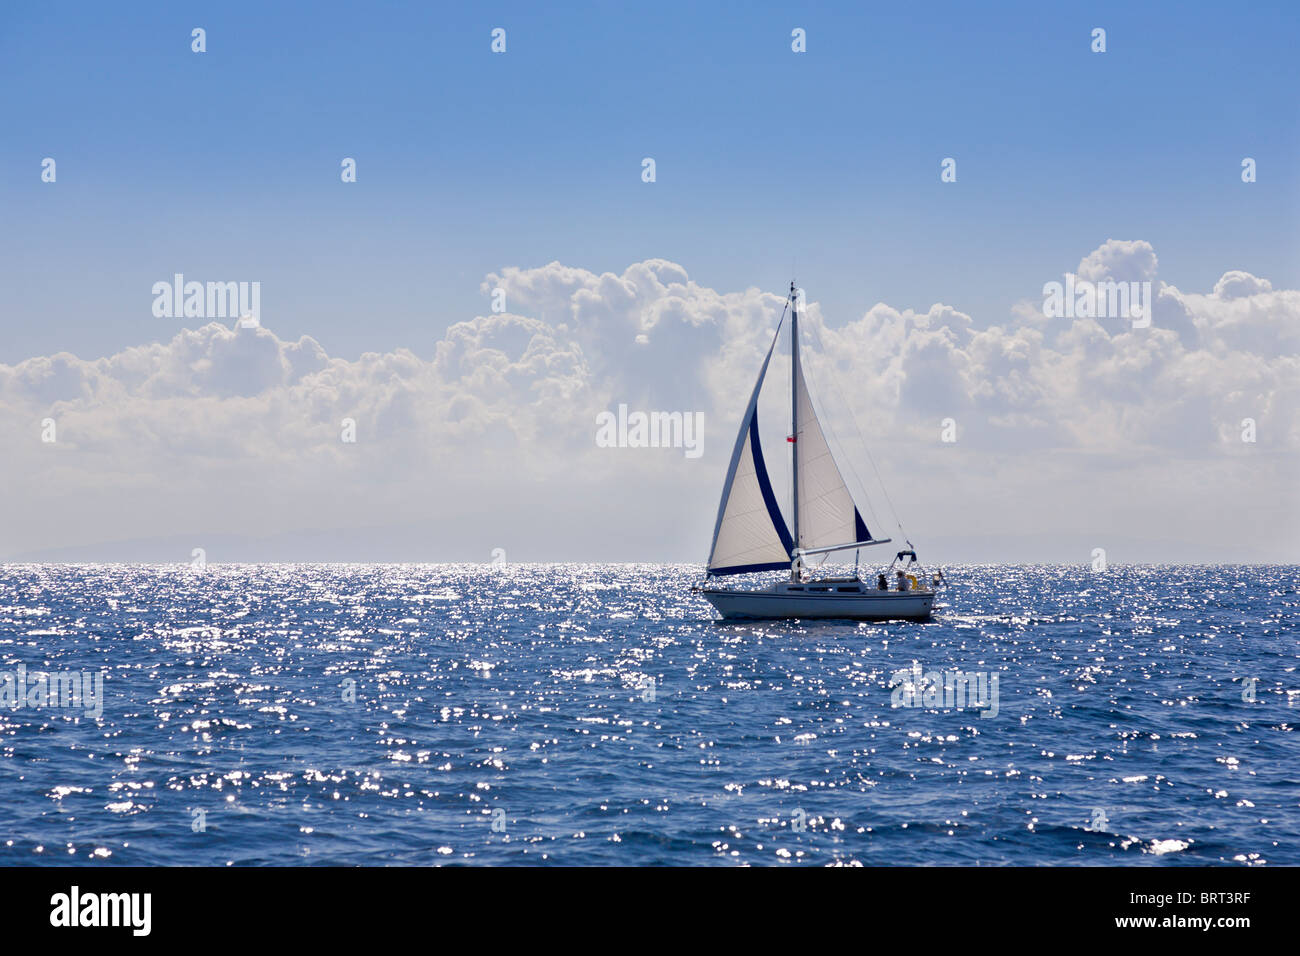 Yacht sailing on port tack, off Paxos, Greece Stock Photo